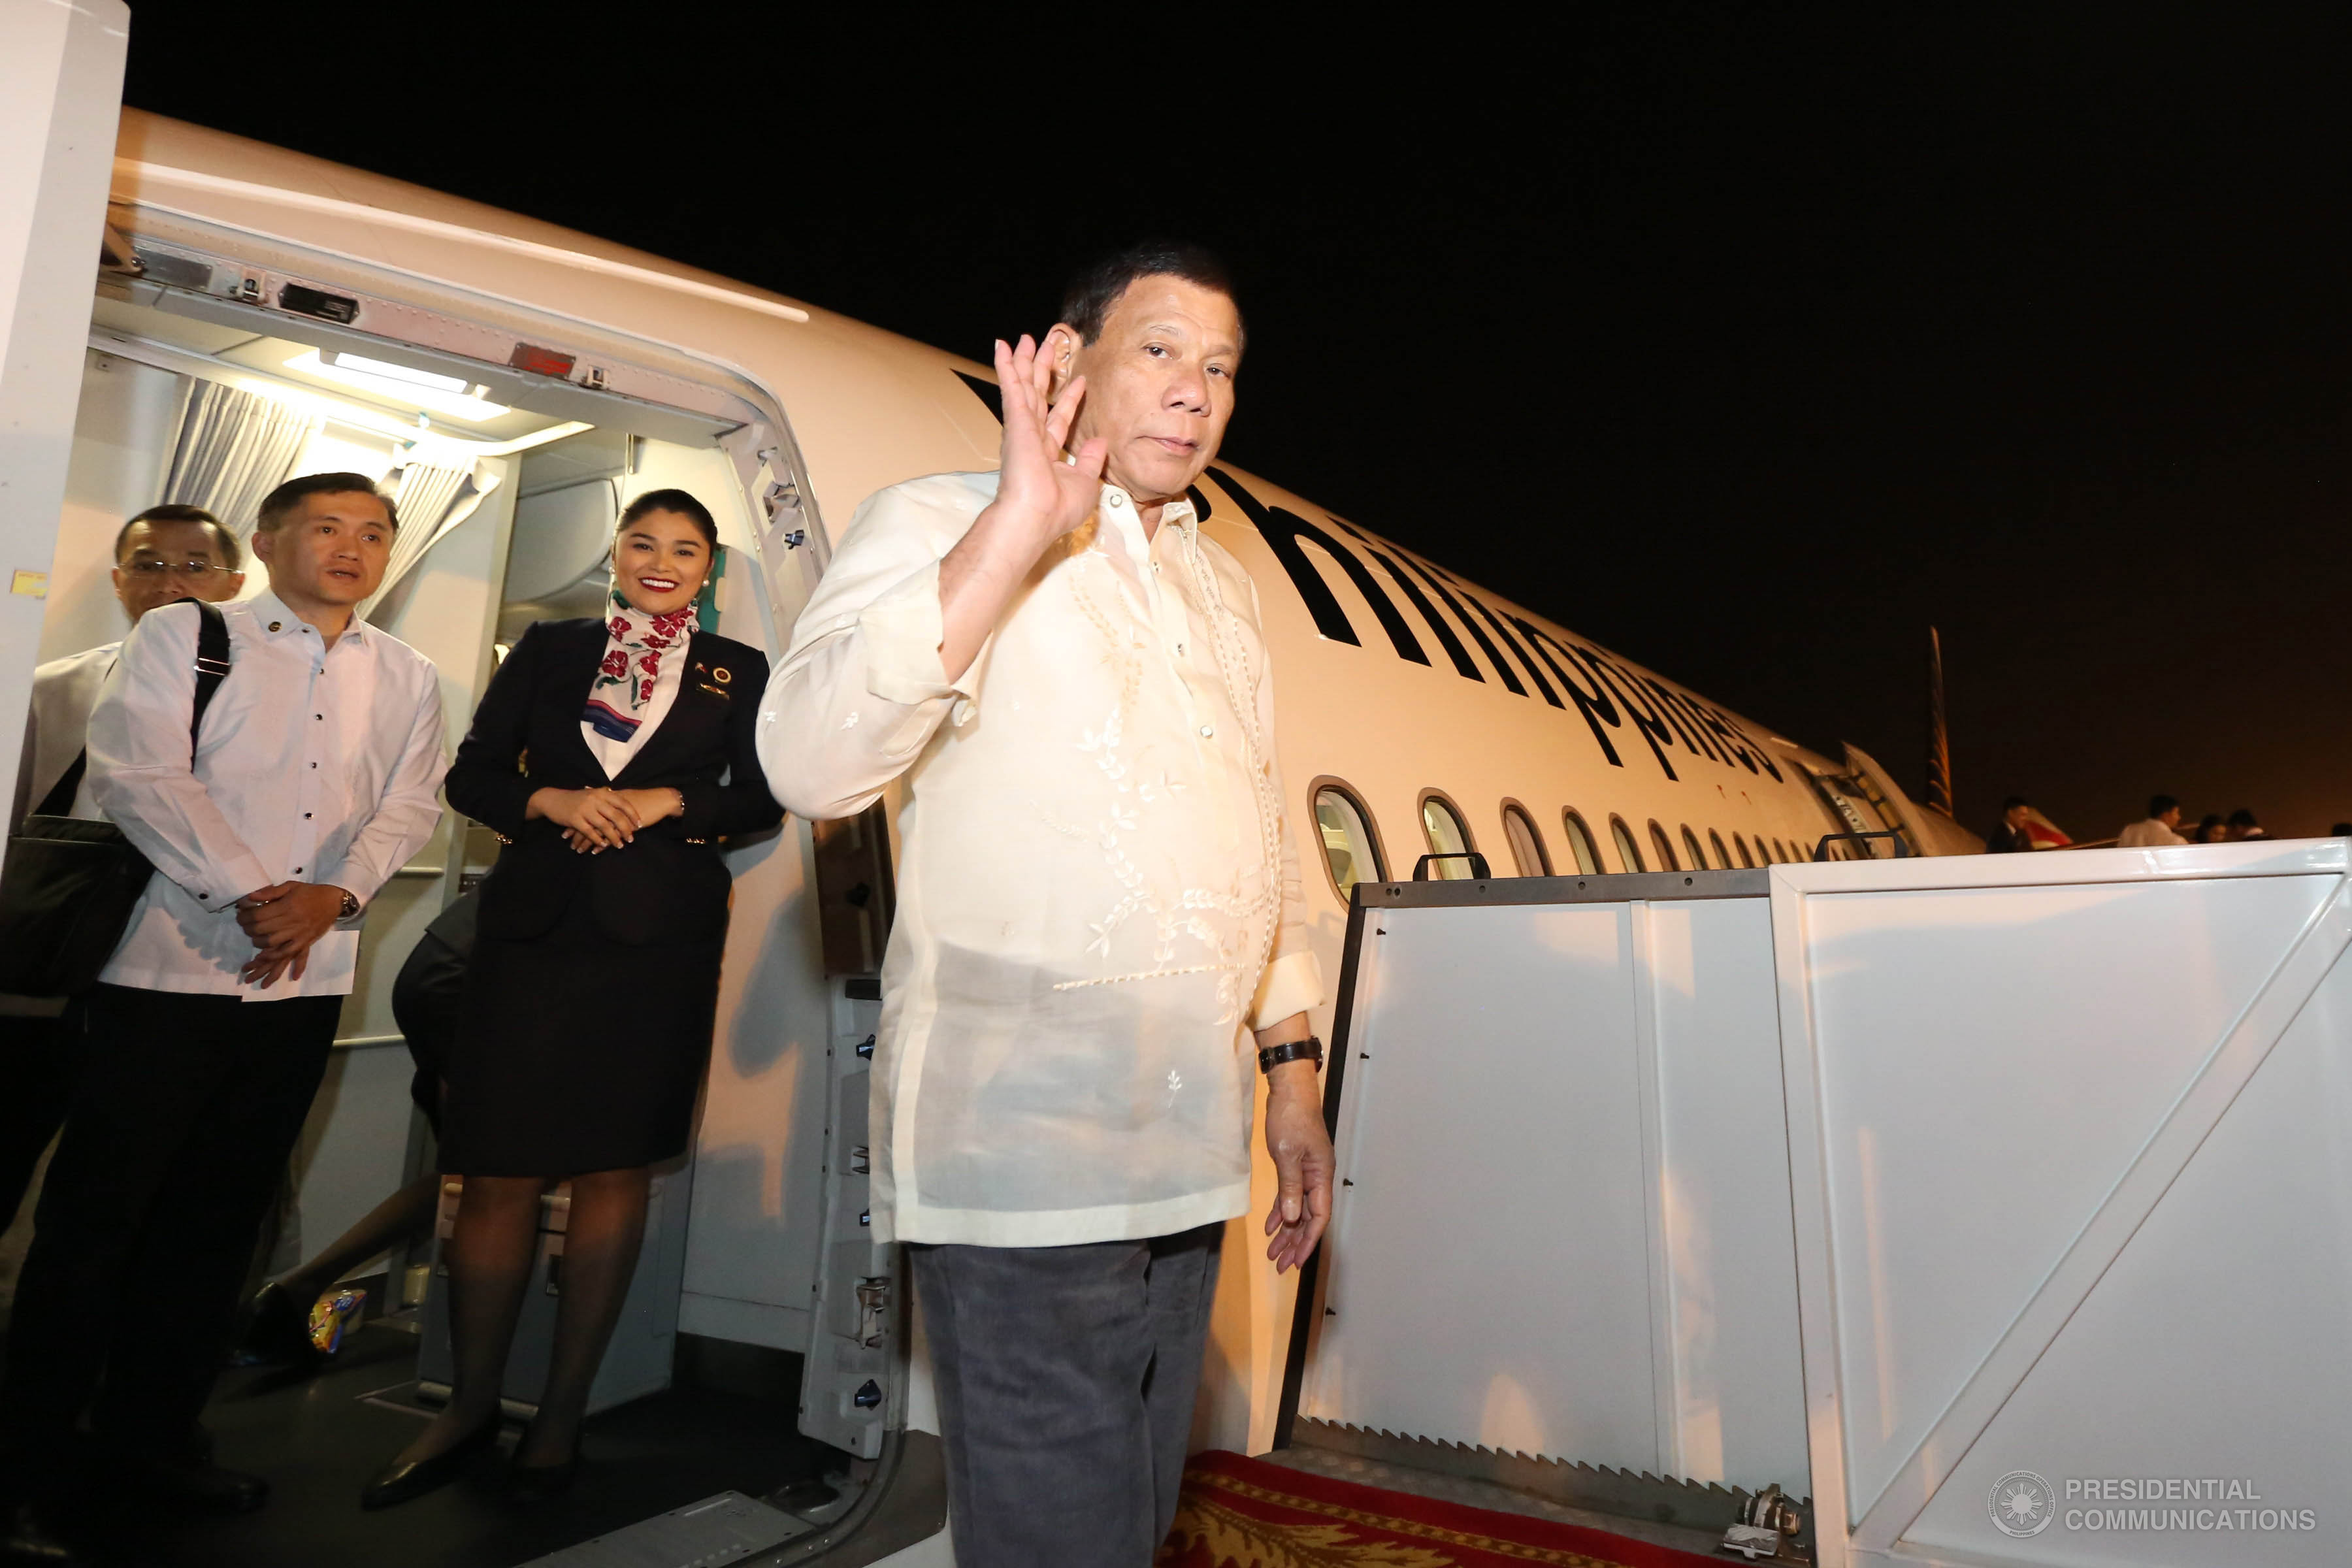 President Rodrigo Roa Duterte on Monday, April 17, vowed that government will provide assistance for the repatriation and livelihood of overseas Filipino workers (OFWs), as he welcomed more than 100 amnesty availees from Saudi Arabia. (Photo: KING RODRIGUEZ/Presidential Photo)